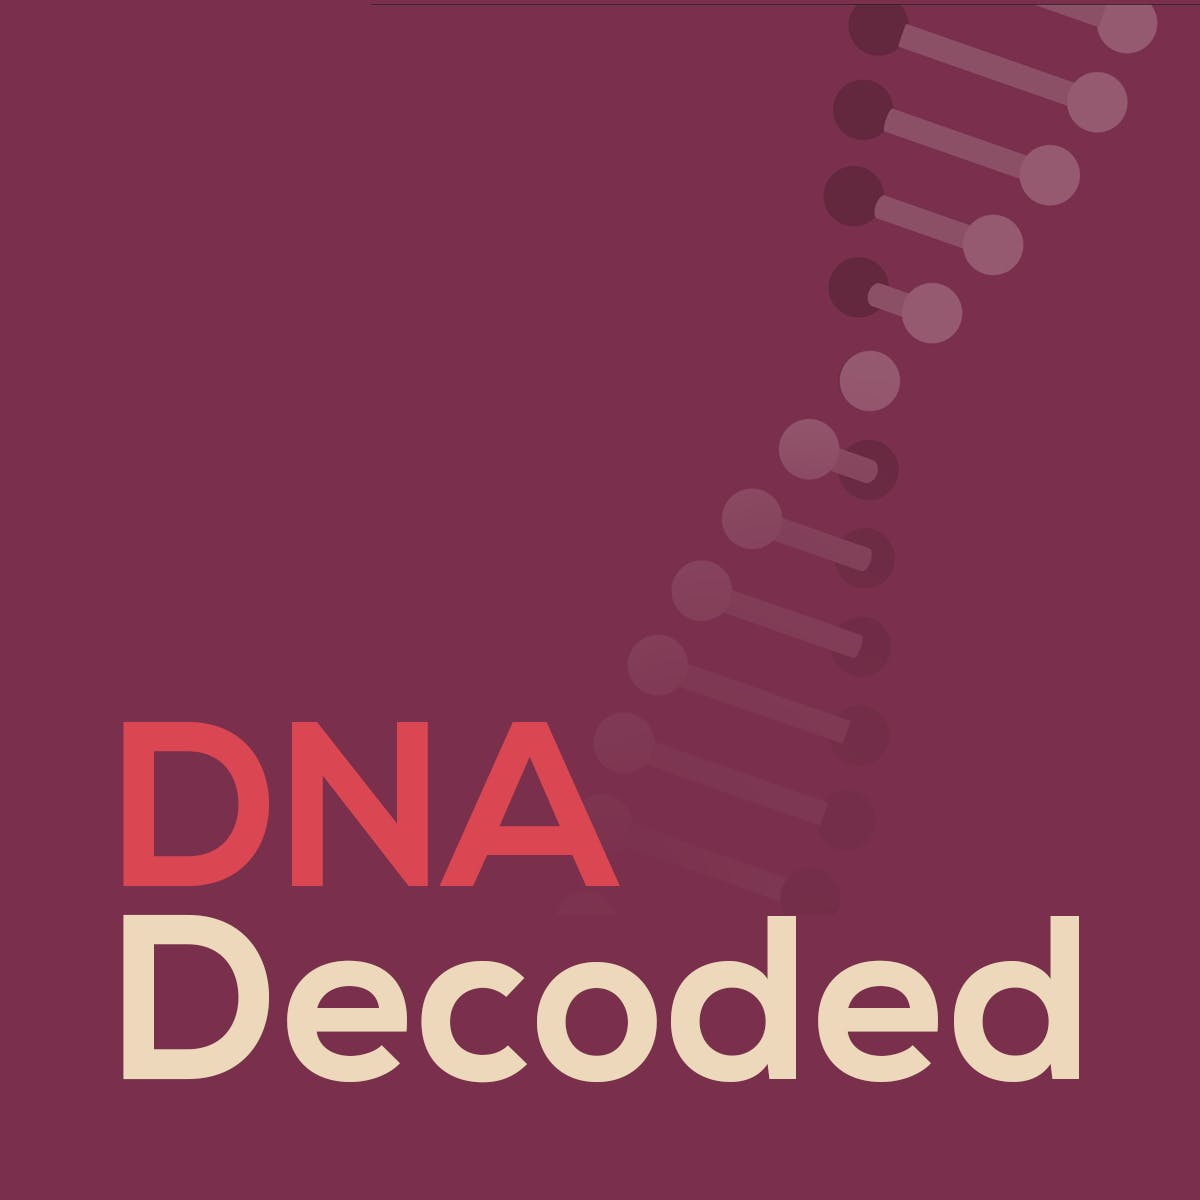 Dna decoded coursera malvernweather Gallery